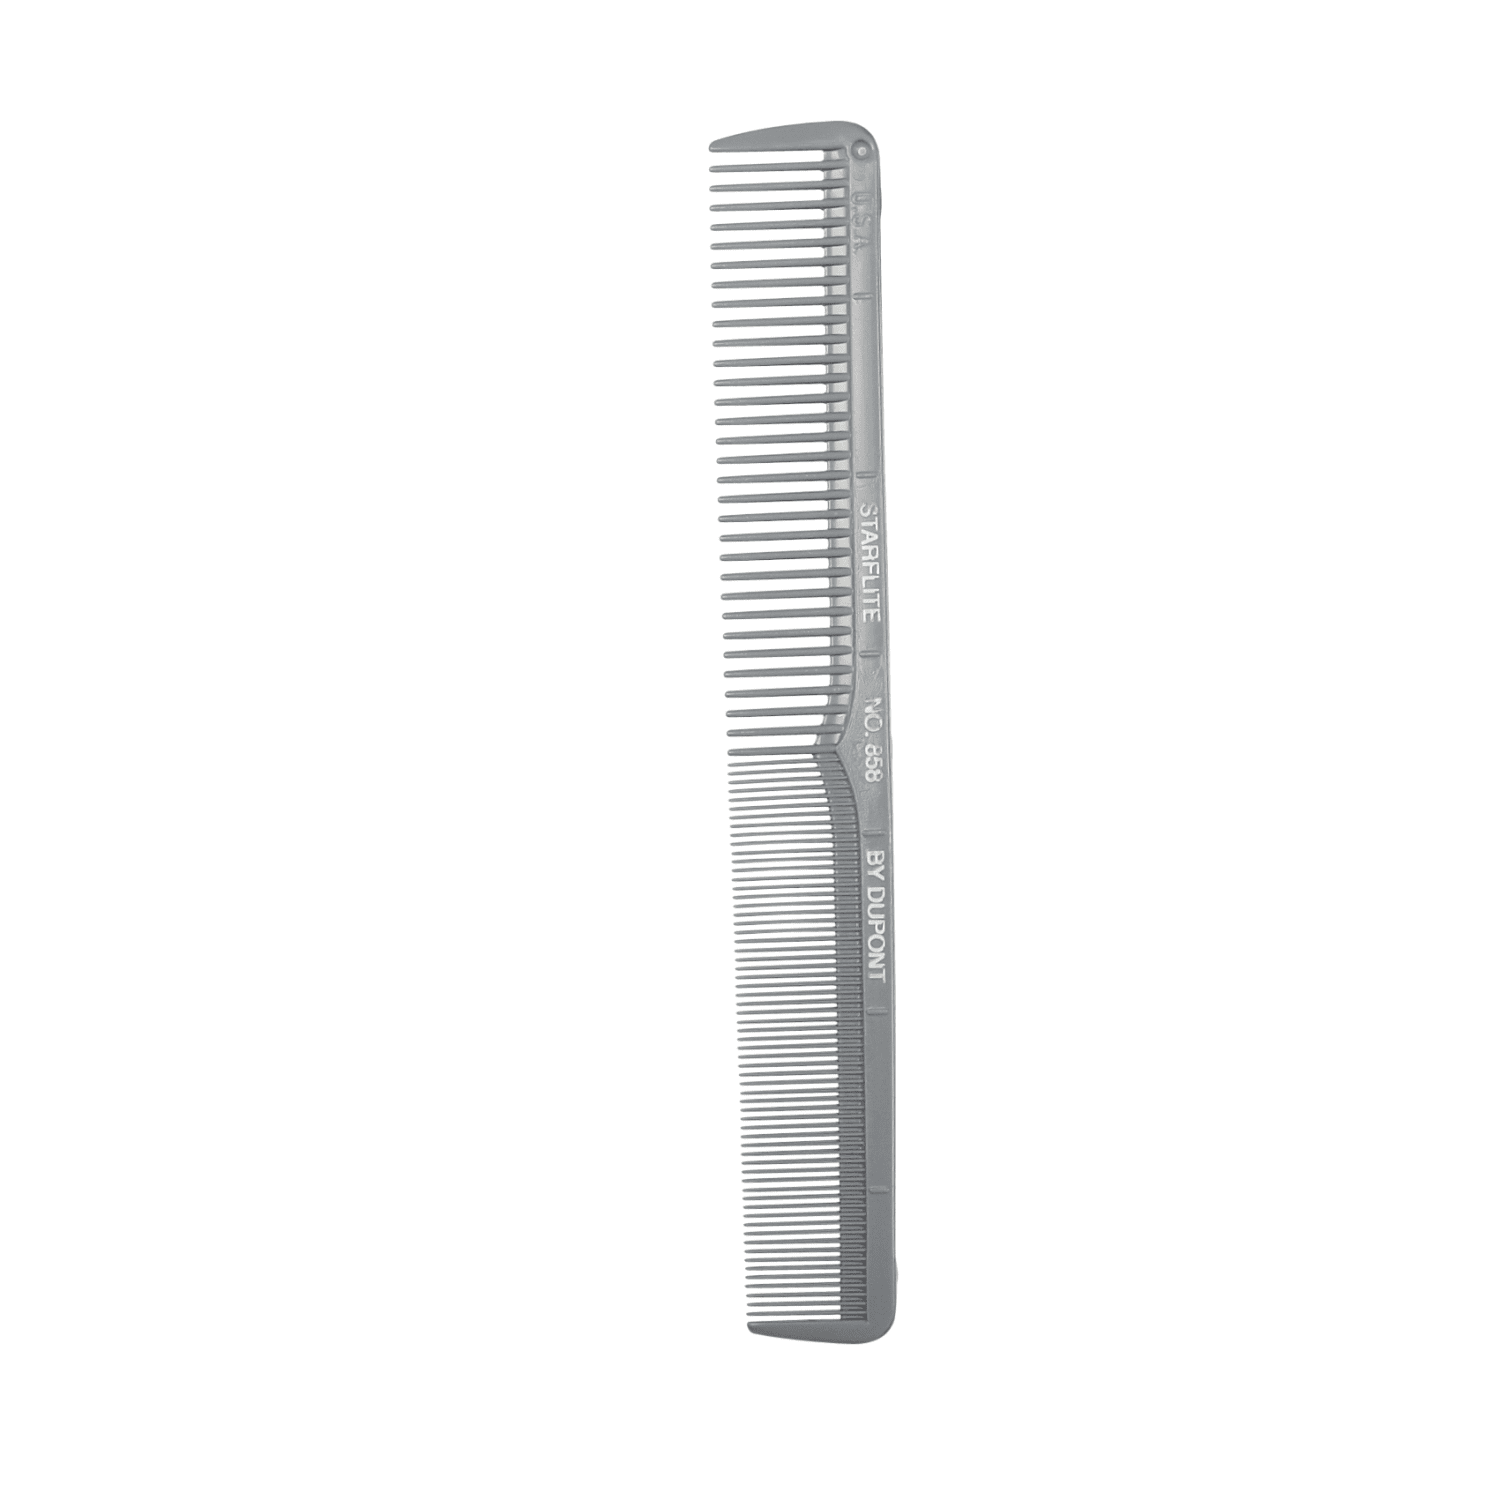 Starflite Comb No. 858 Cutting Comb Anti Static by Dupont